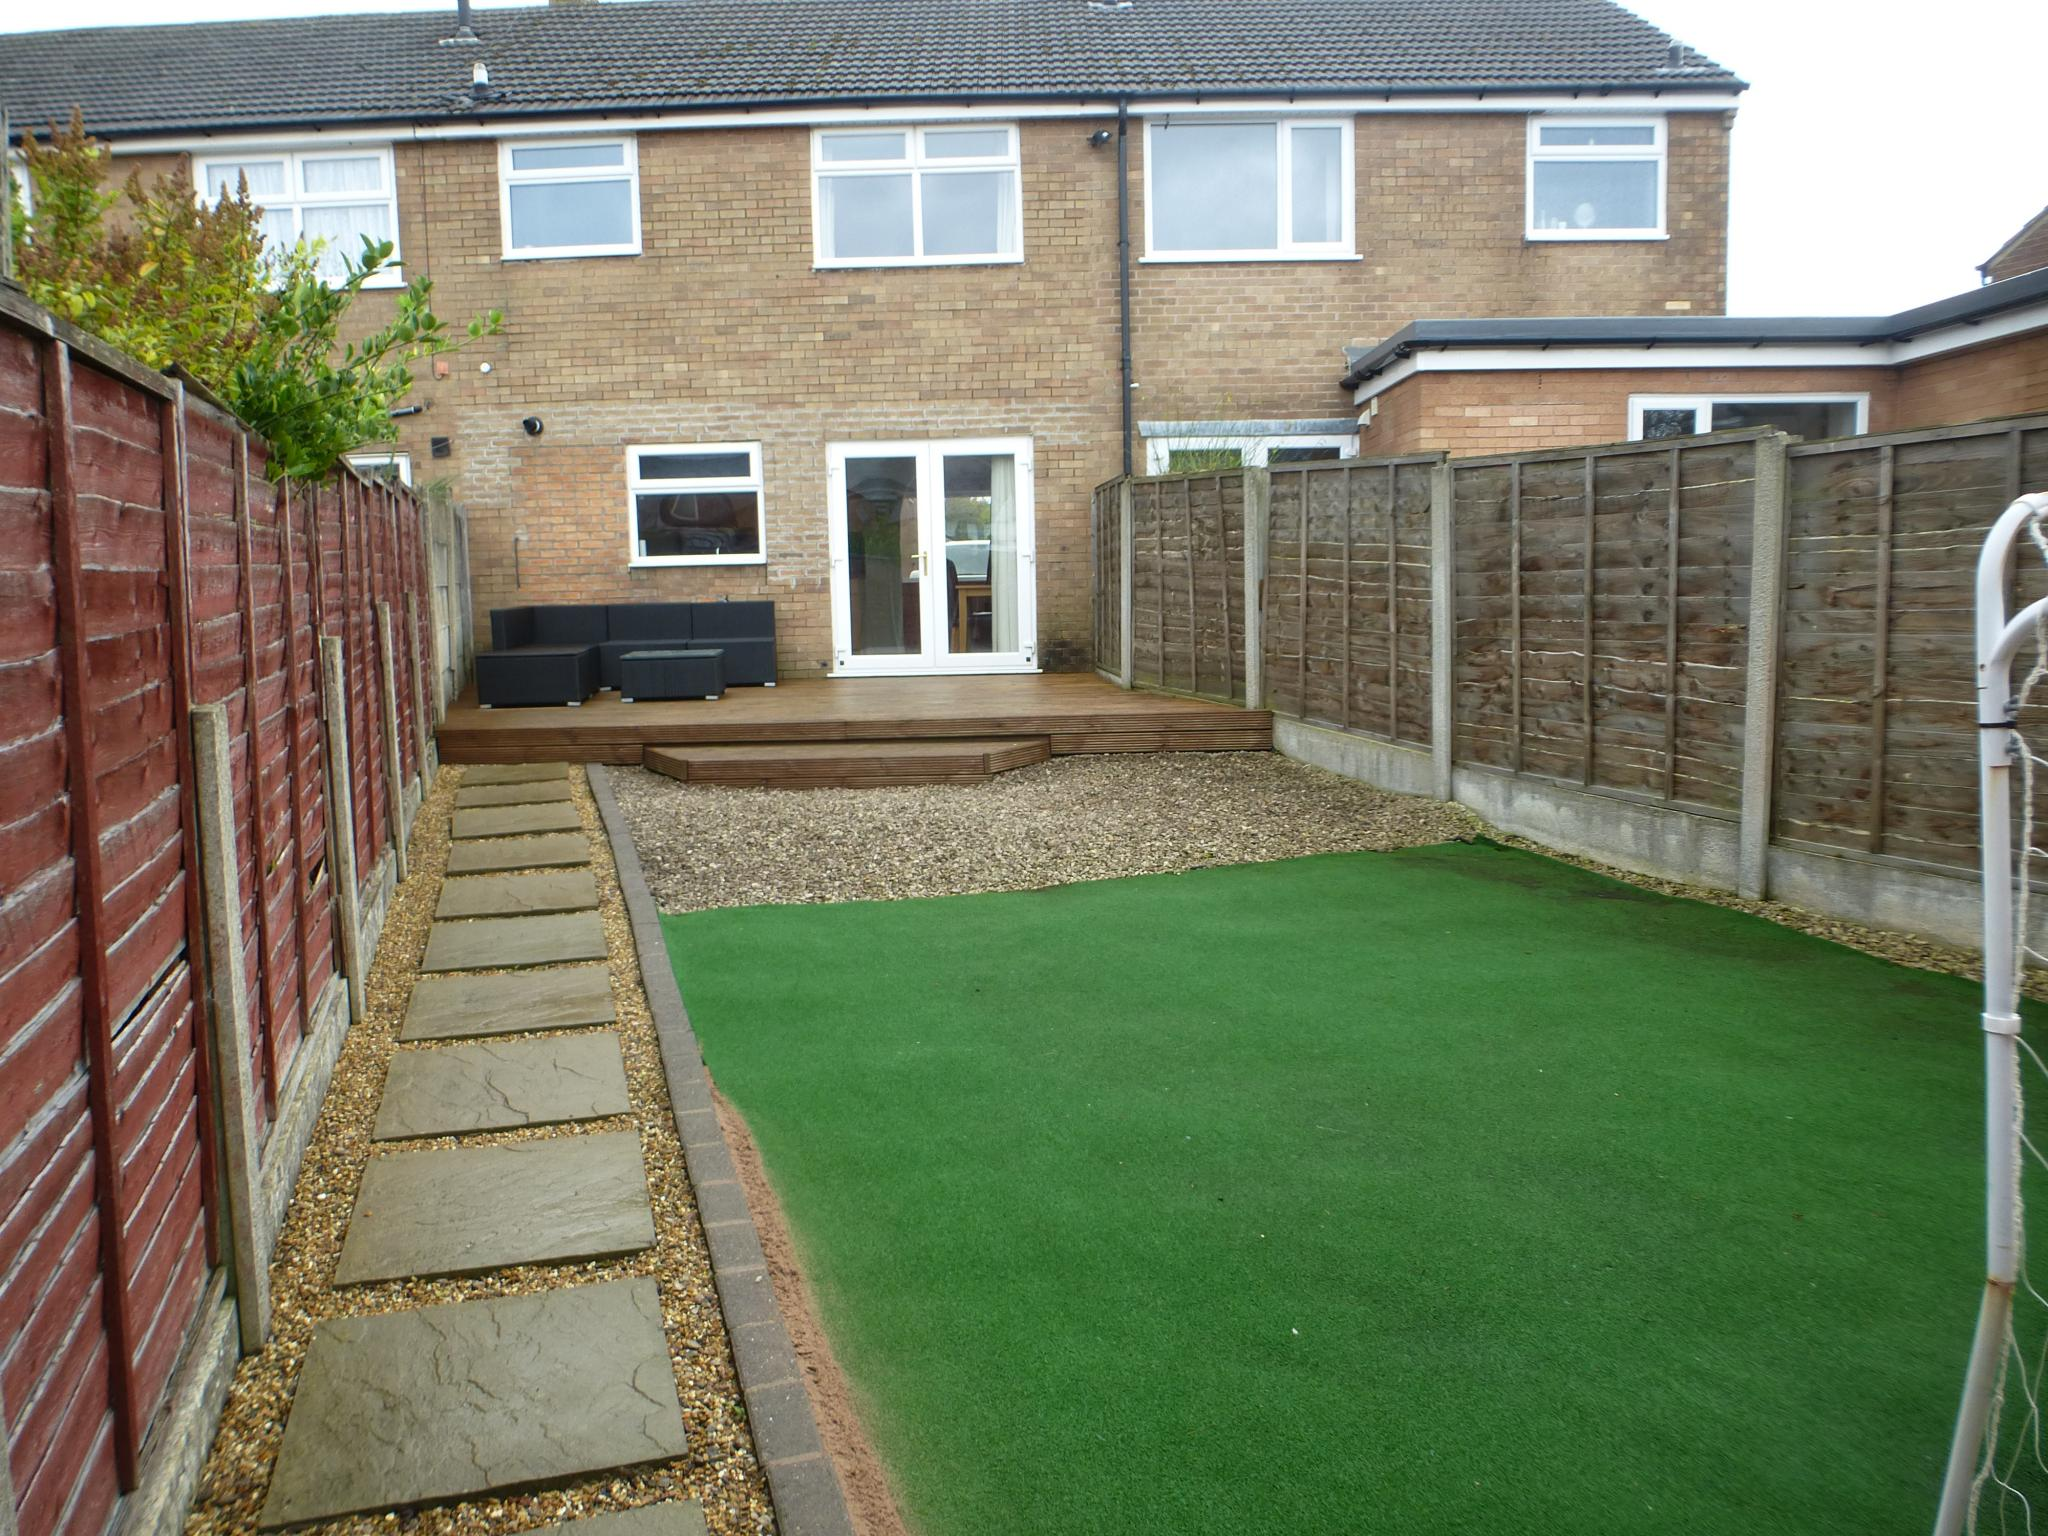 3 Bedroom Mid Terraced House For Sale - Image 17